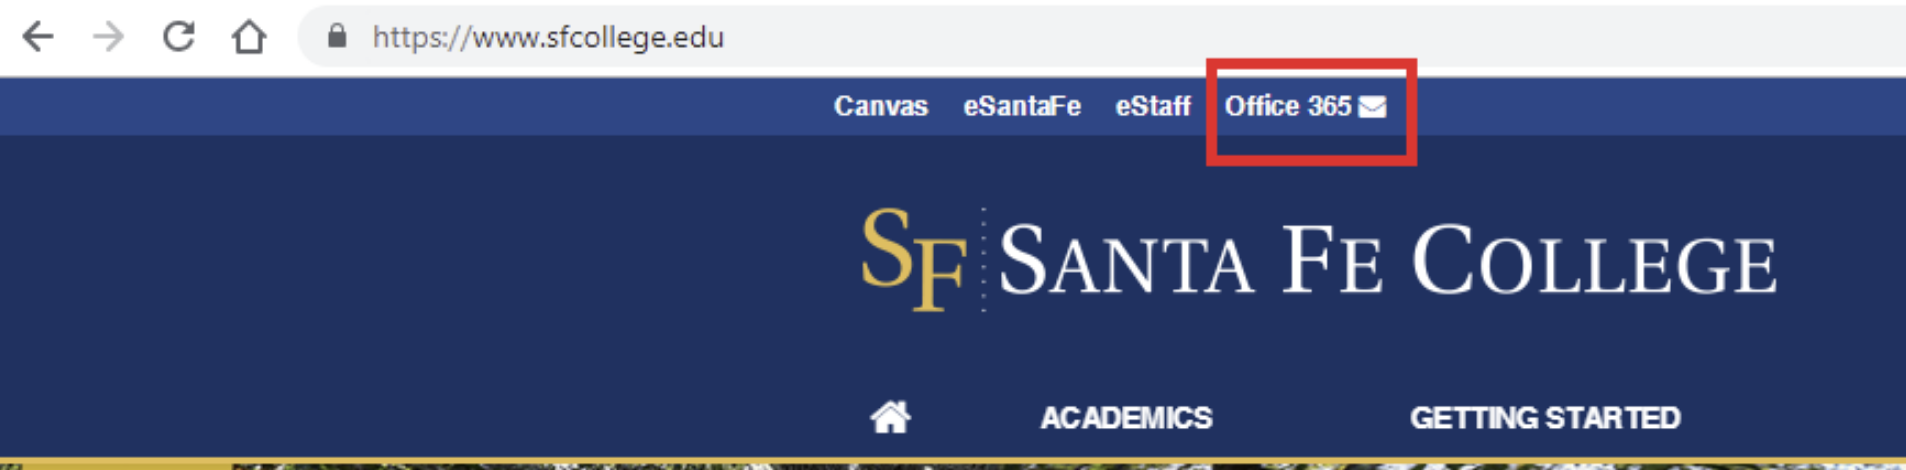 Changes to Your Office 365 Link on College Website | Today @ Santa Fe